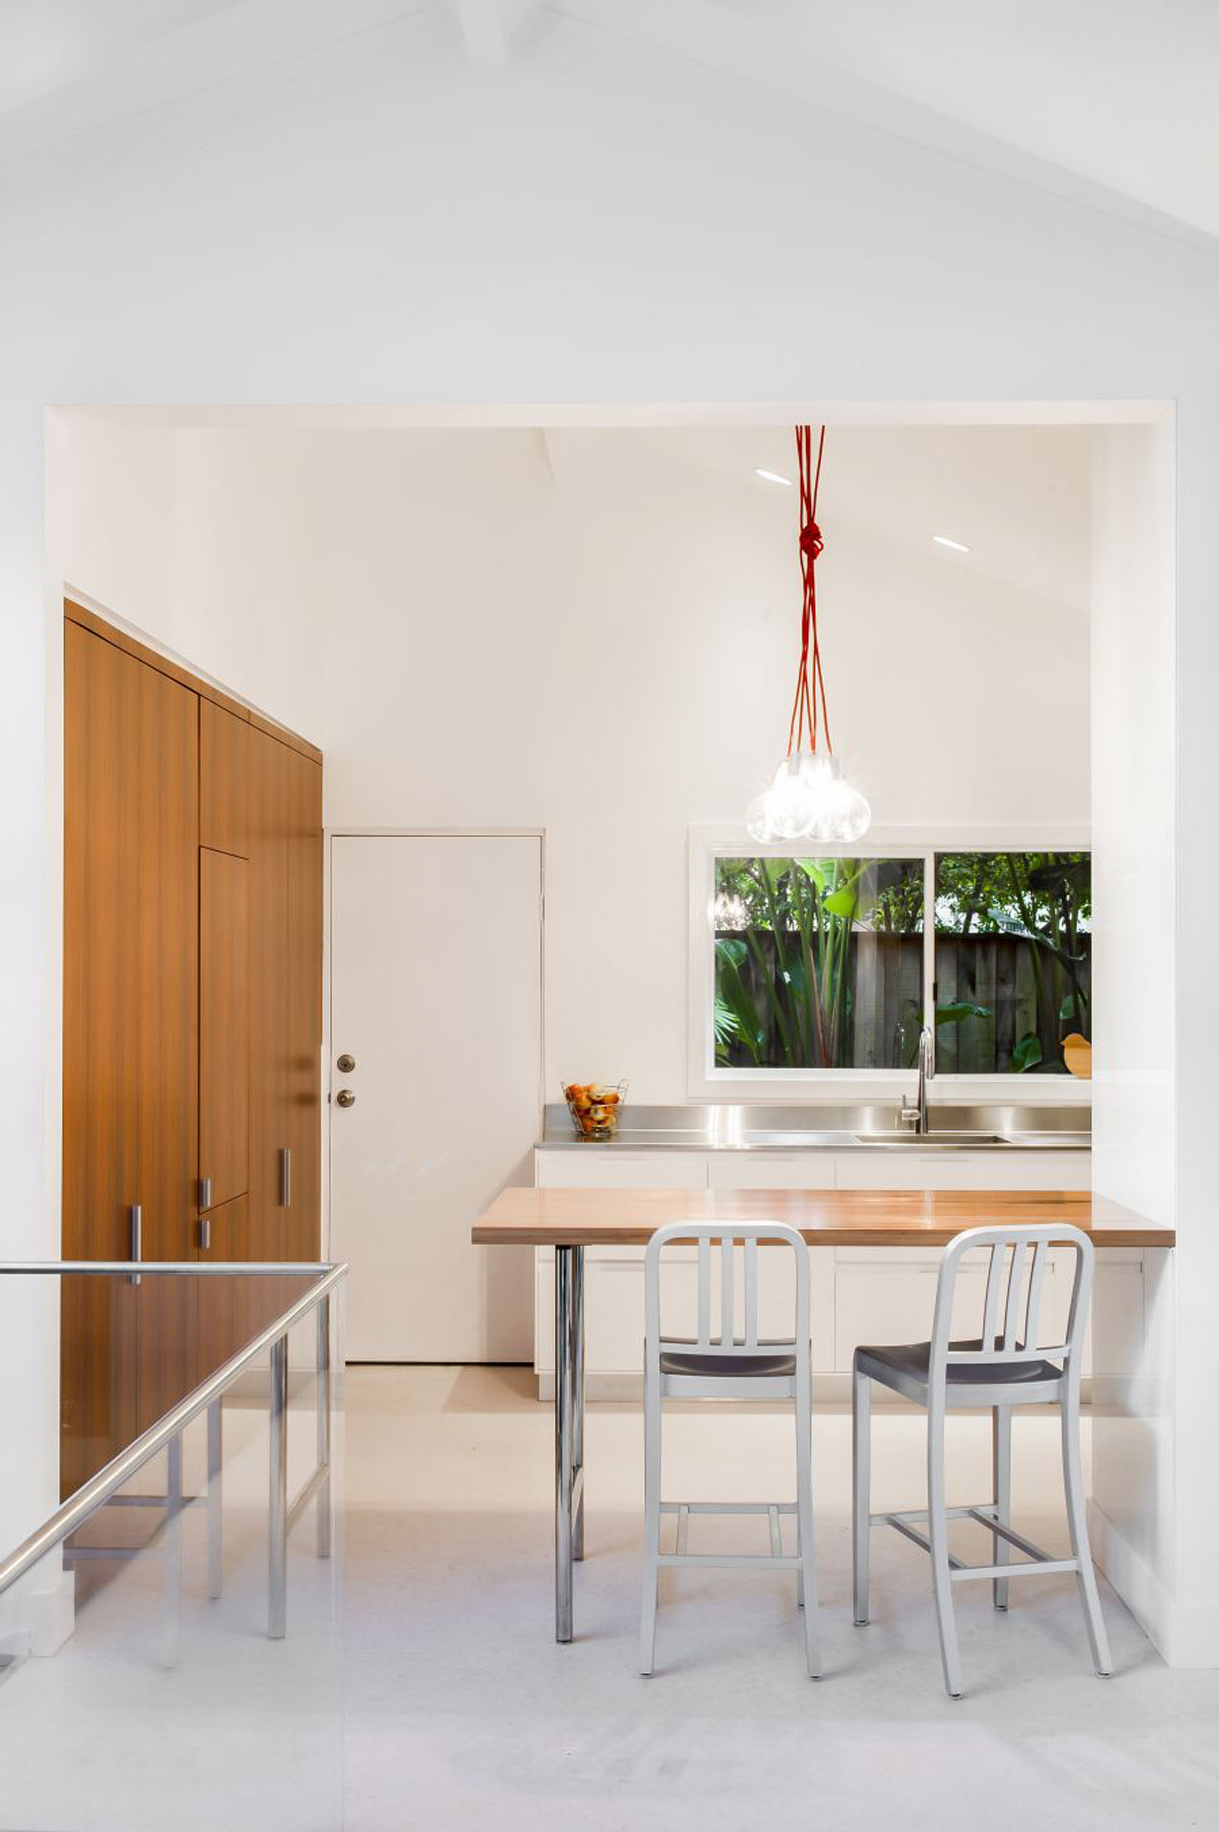 Minimalist Contemporary Kitchen And Dining Room With Cool Pendant Lamps And White Color Scheme Making Pendant Lights (Image 9 of 25)